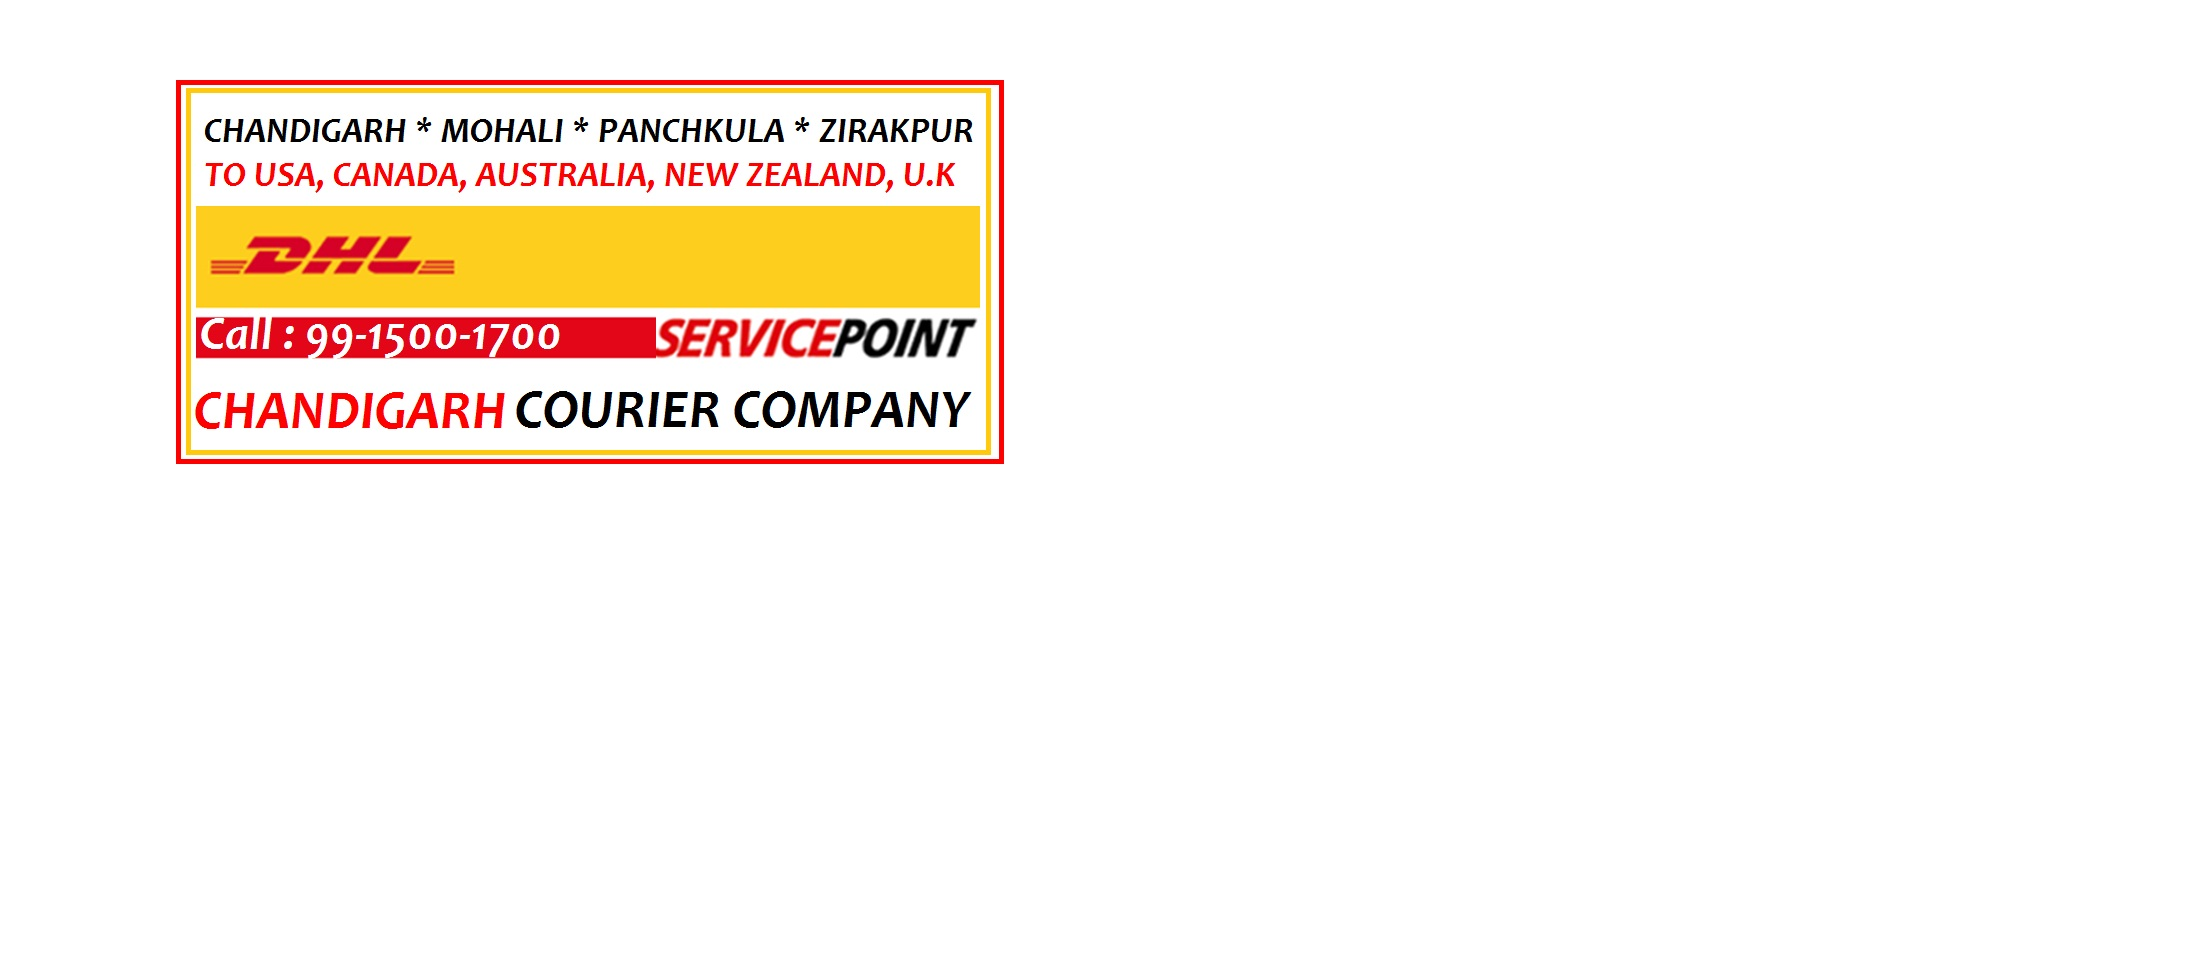 MOTOR CYLE/BIKE CARGO SHIPPING CHANDIGARH/PANCHKULA TO WORLDWIDE in  listed under Services - Courier Services